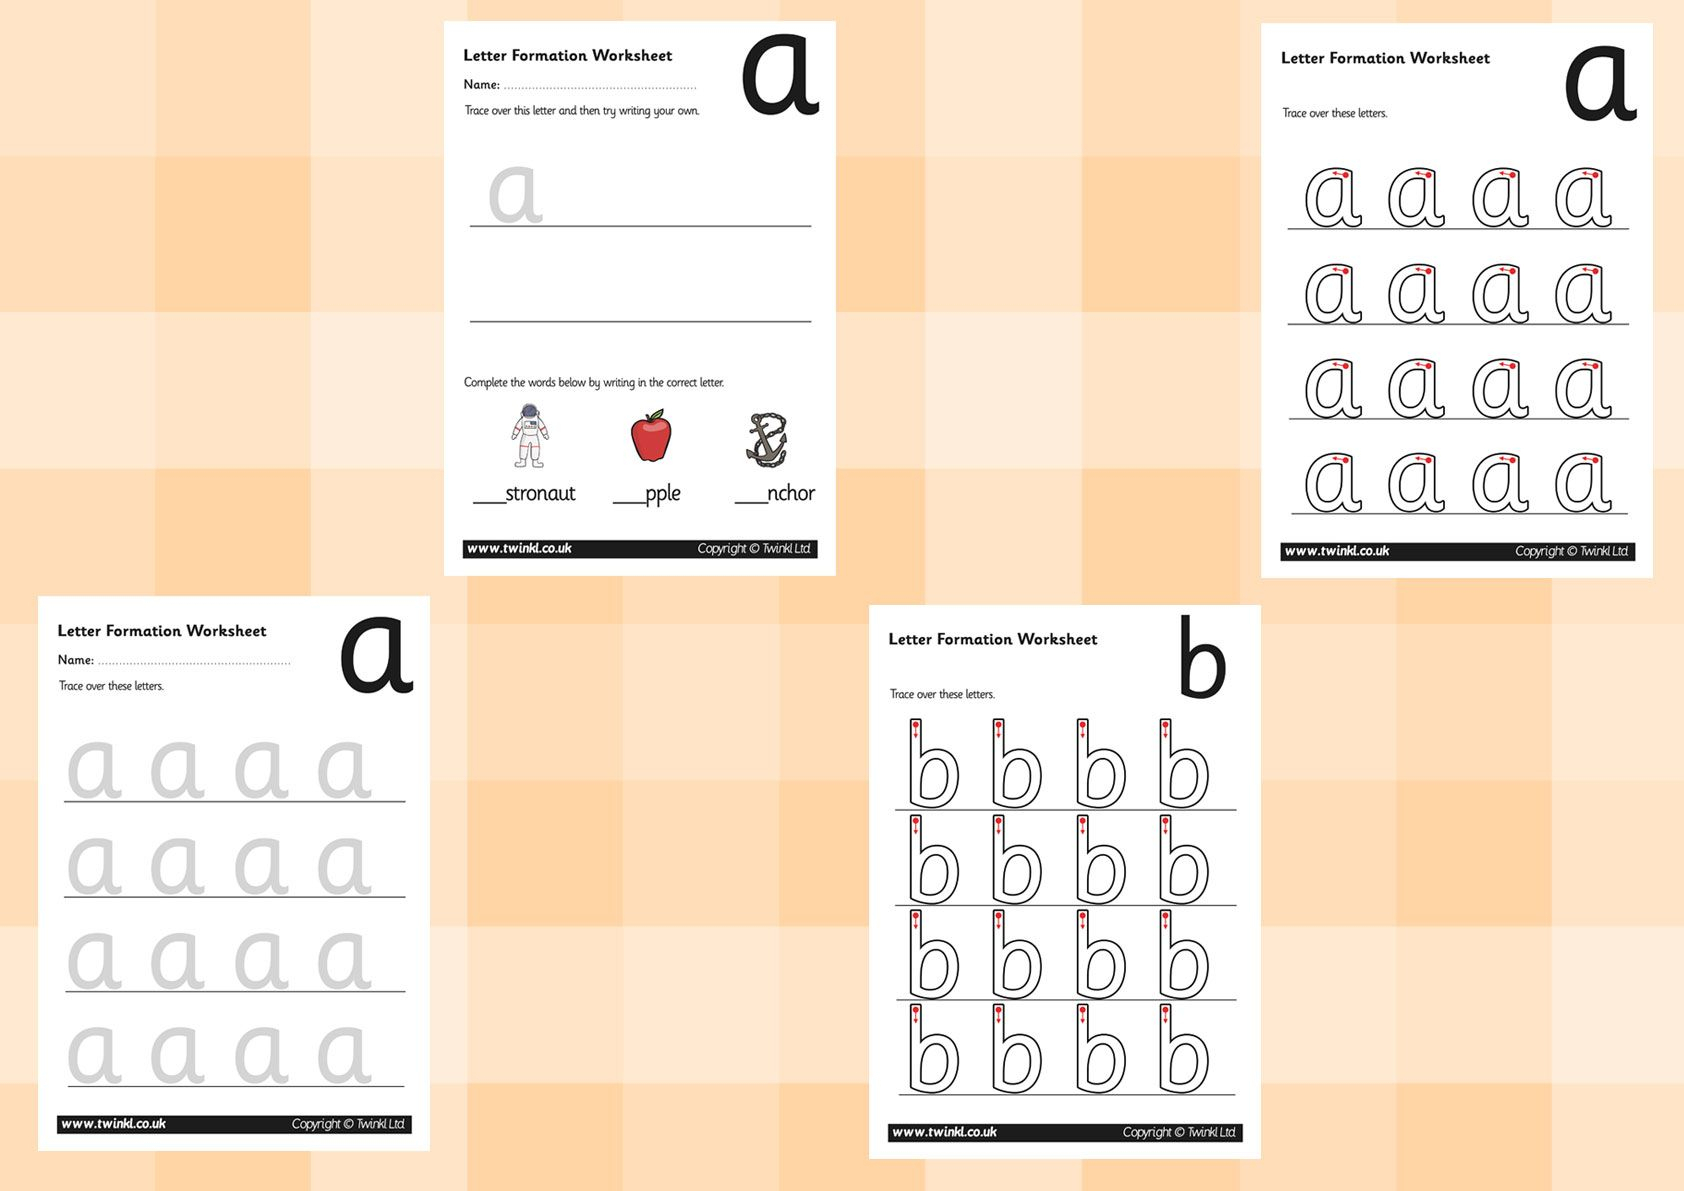 Twinkl Resources >> A-Z Letter Formation Worksheets for Letter Tracing Worksheets Twinkl